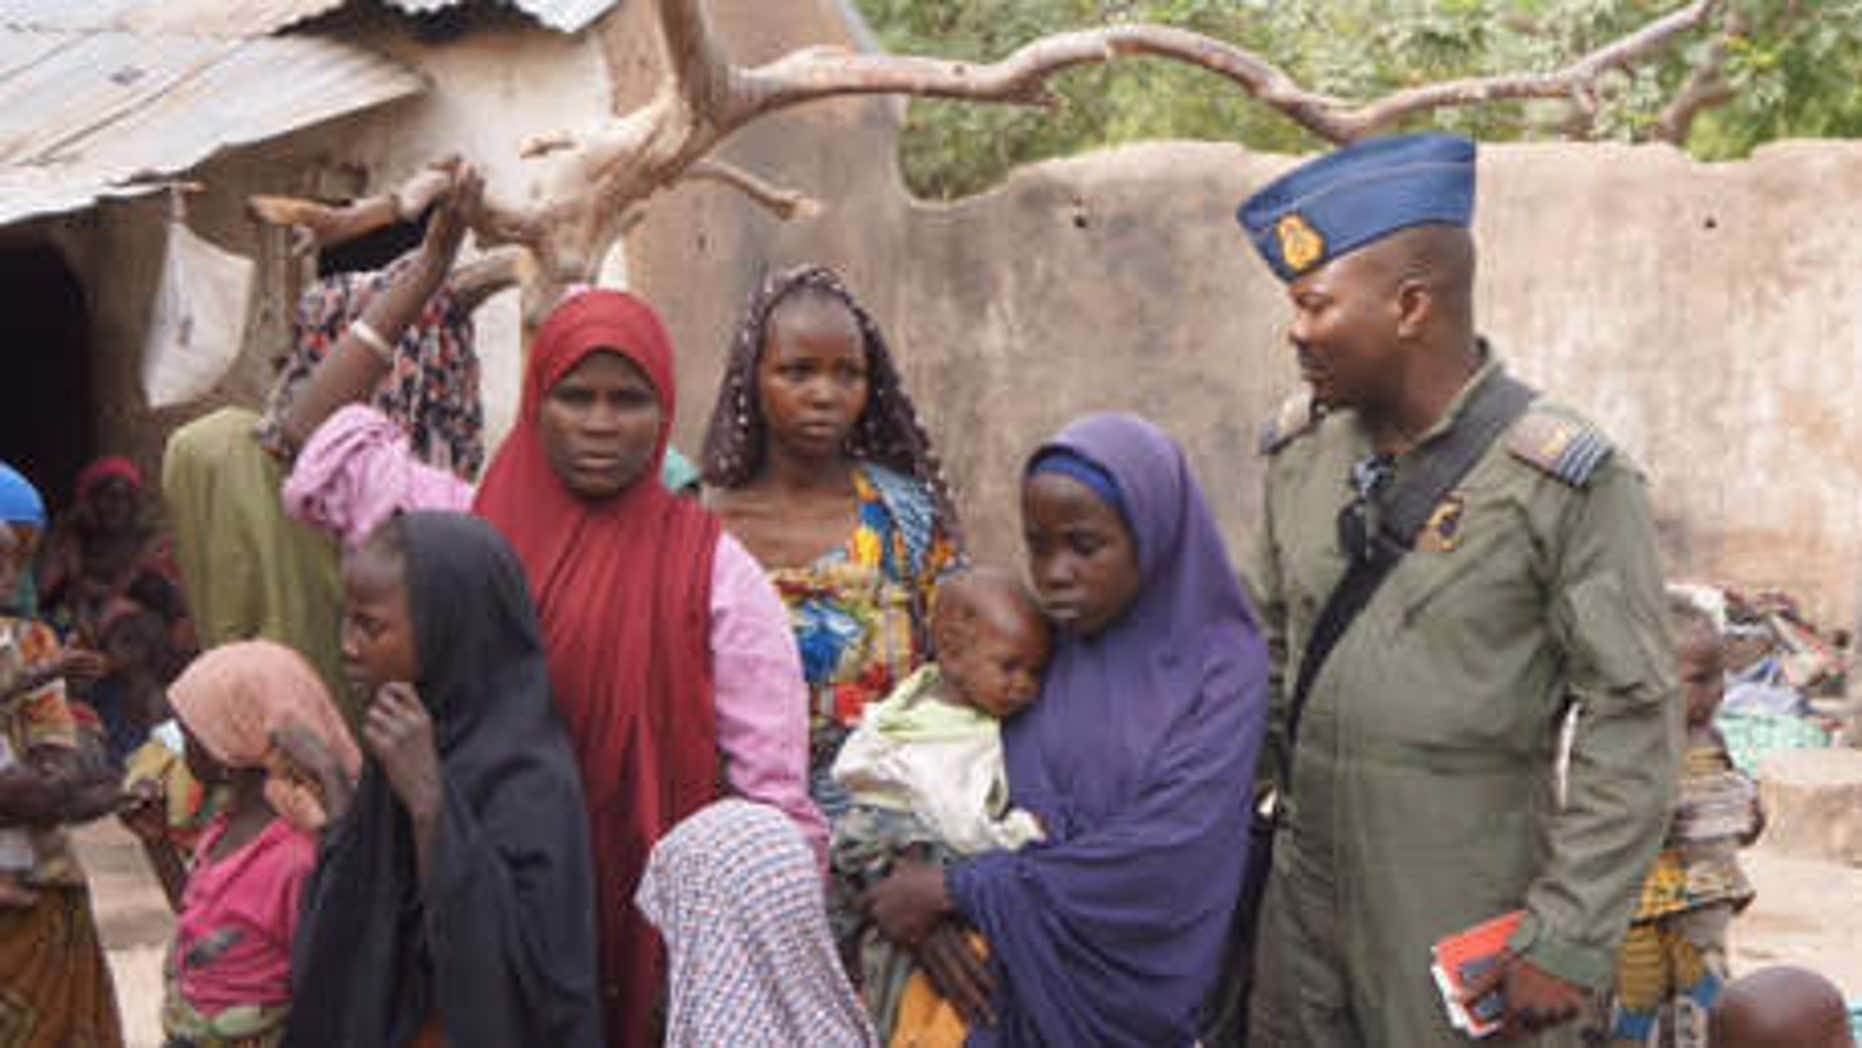 April 29, 2015: A Nigerian soldier stands next to woman and children that were allegedly rescued by the Nigerian Military after being taken by Islamic extremists in Sambisa Forest, Nigeria.